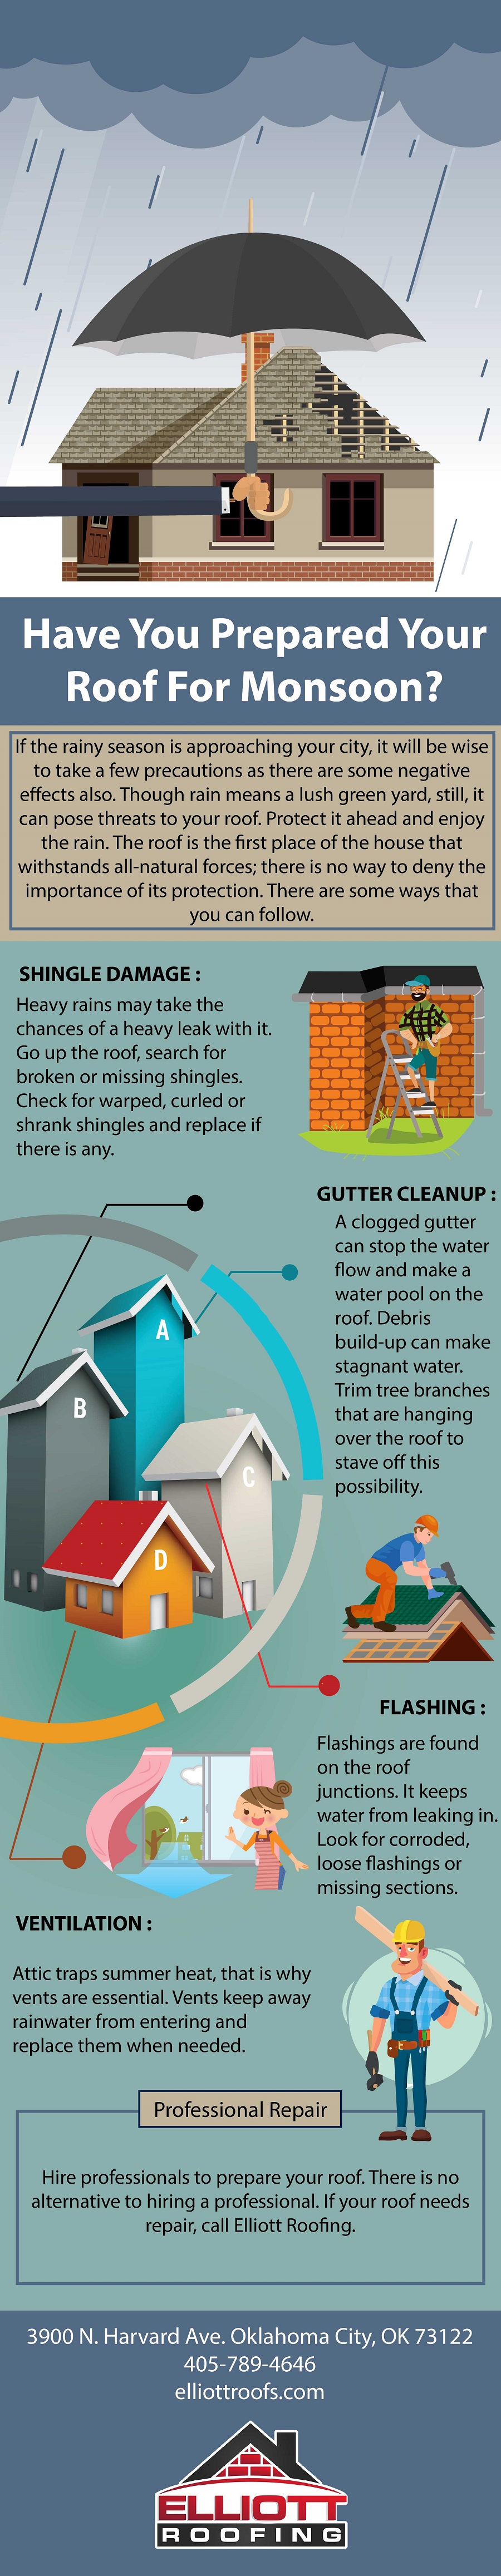 Have You Prepared Your Roof For Monsoon